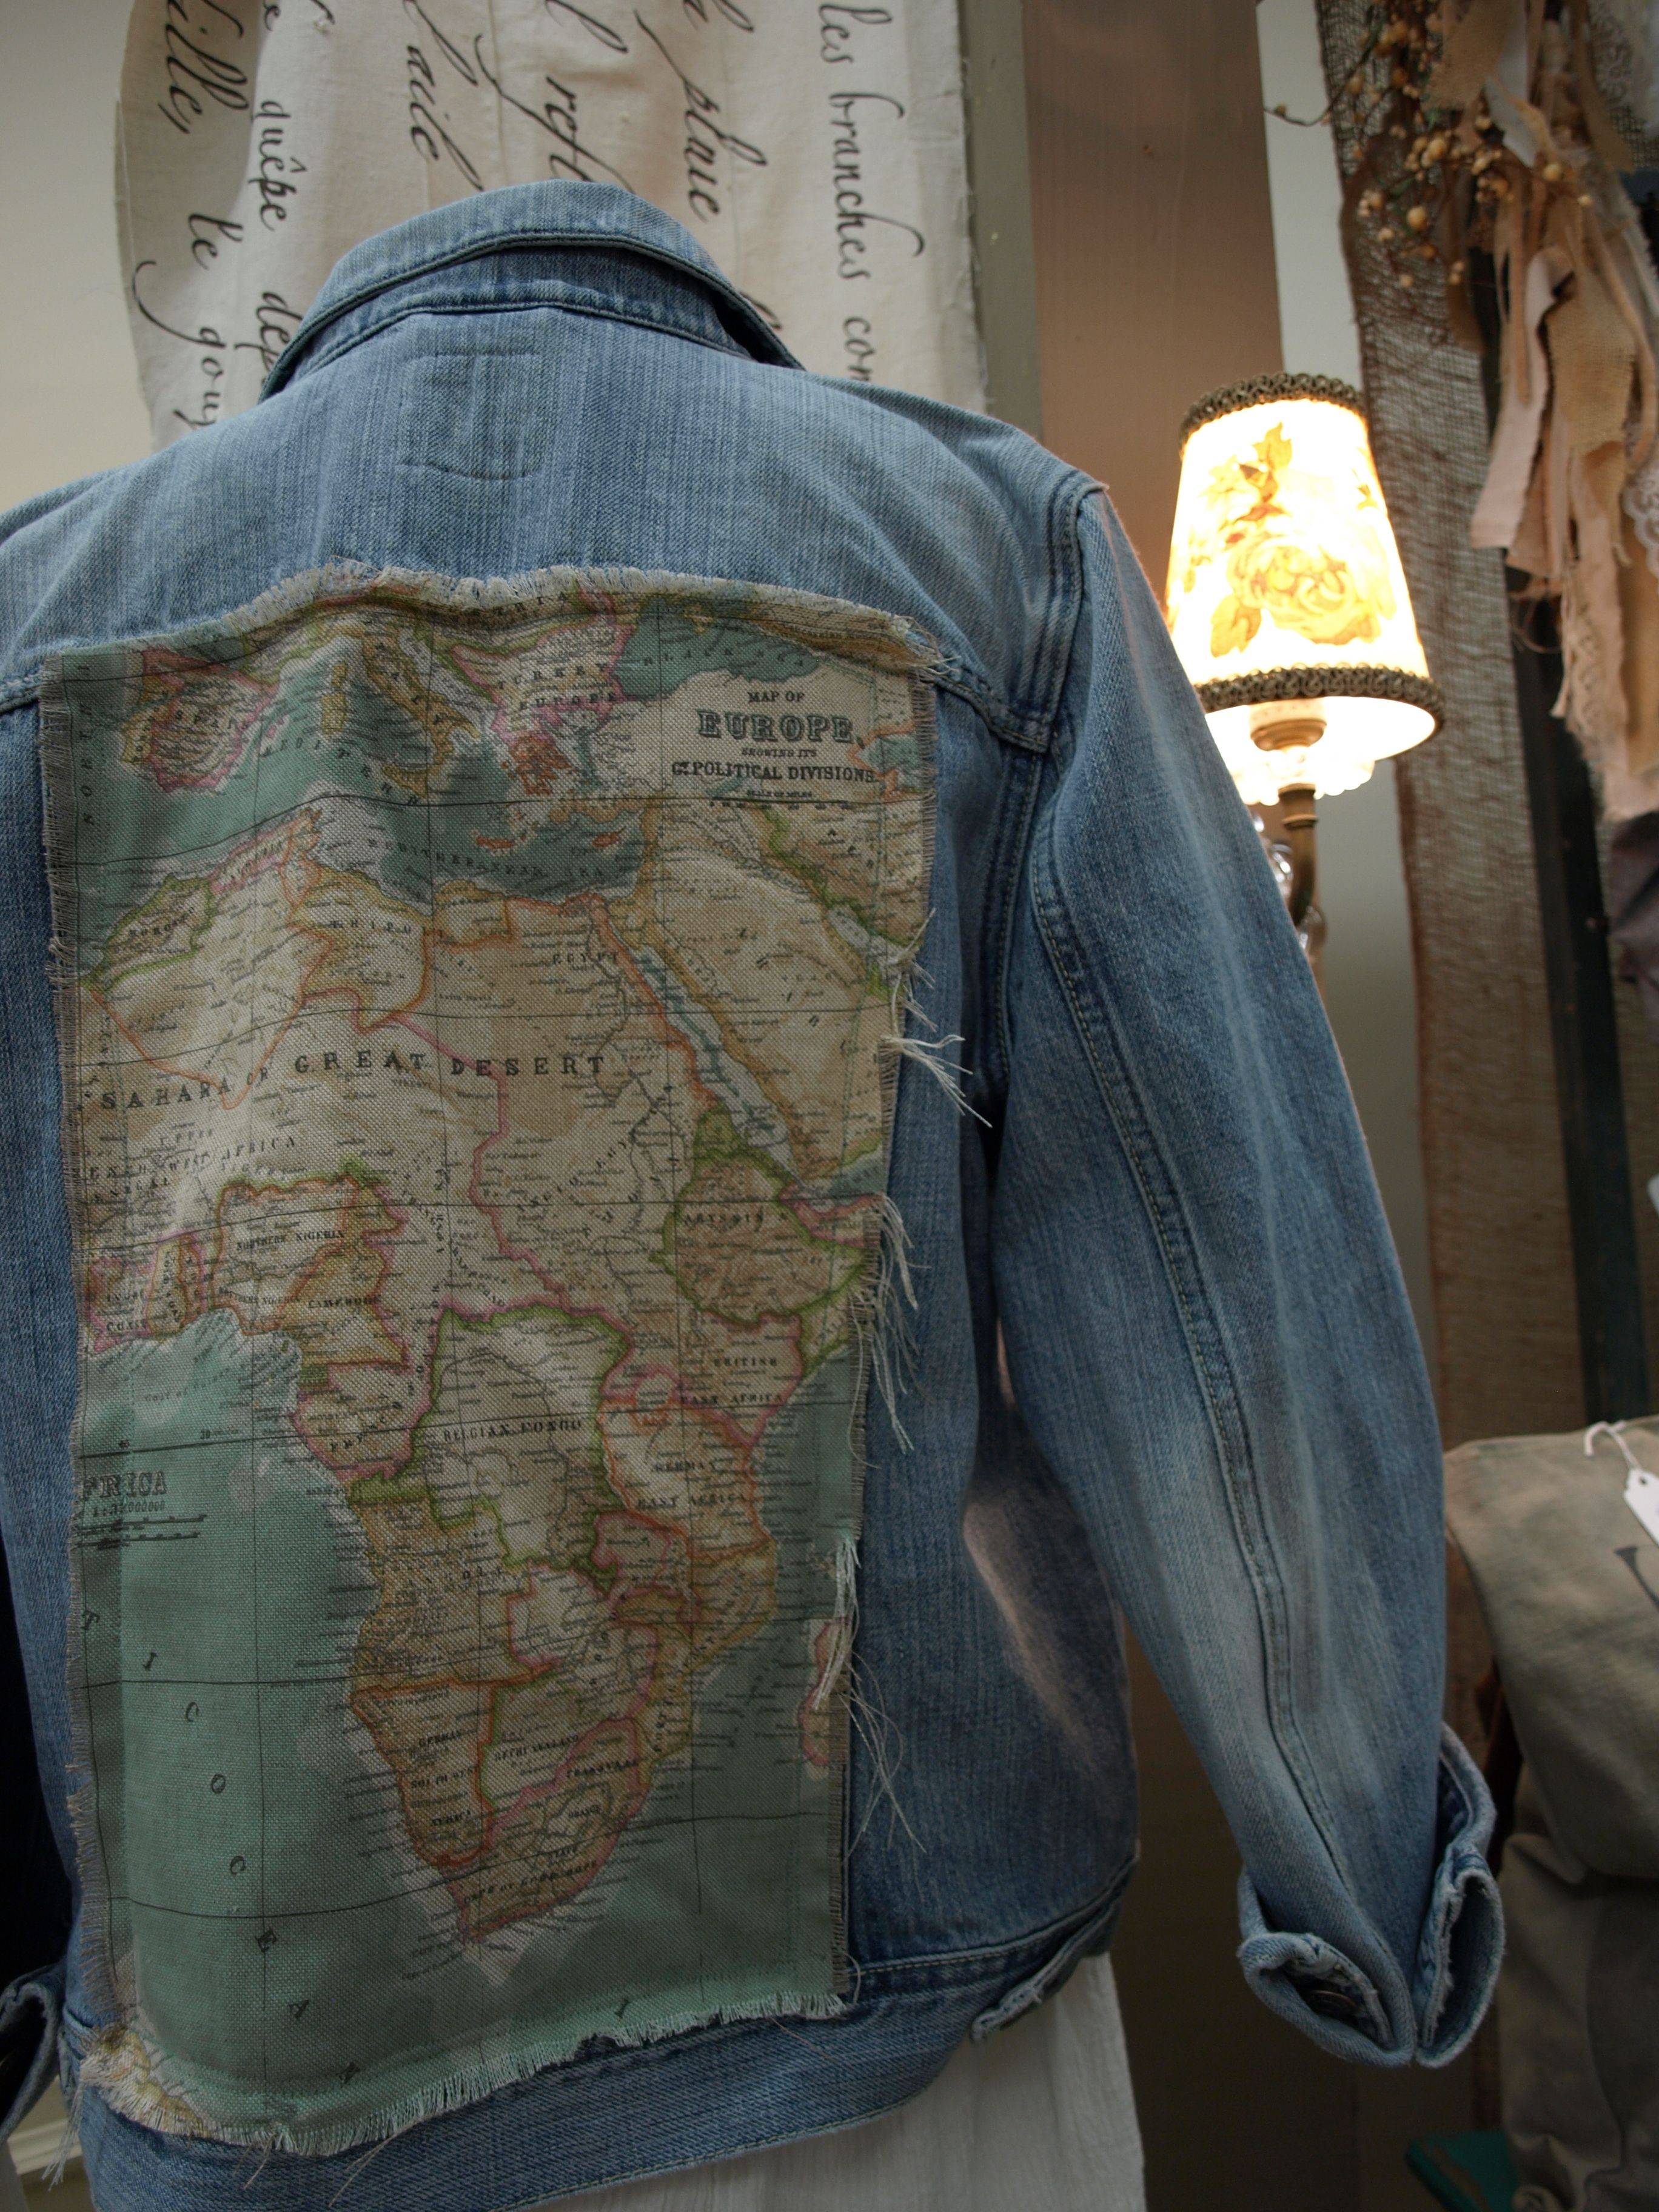 Denim jackets upcycled with annie sloans world map fabric by studio denim jackets upcycled with annie sloans world map fabric by studio 184 in madison wi studio184 anniesloan worldmapfabric chalkpaint gumiabroncs Image collections